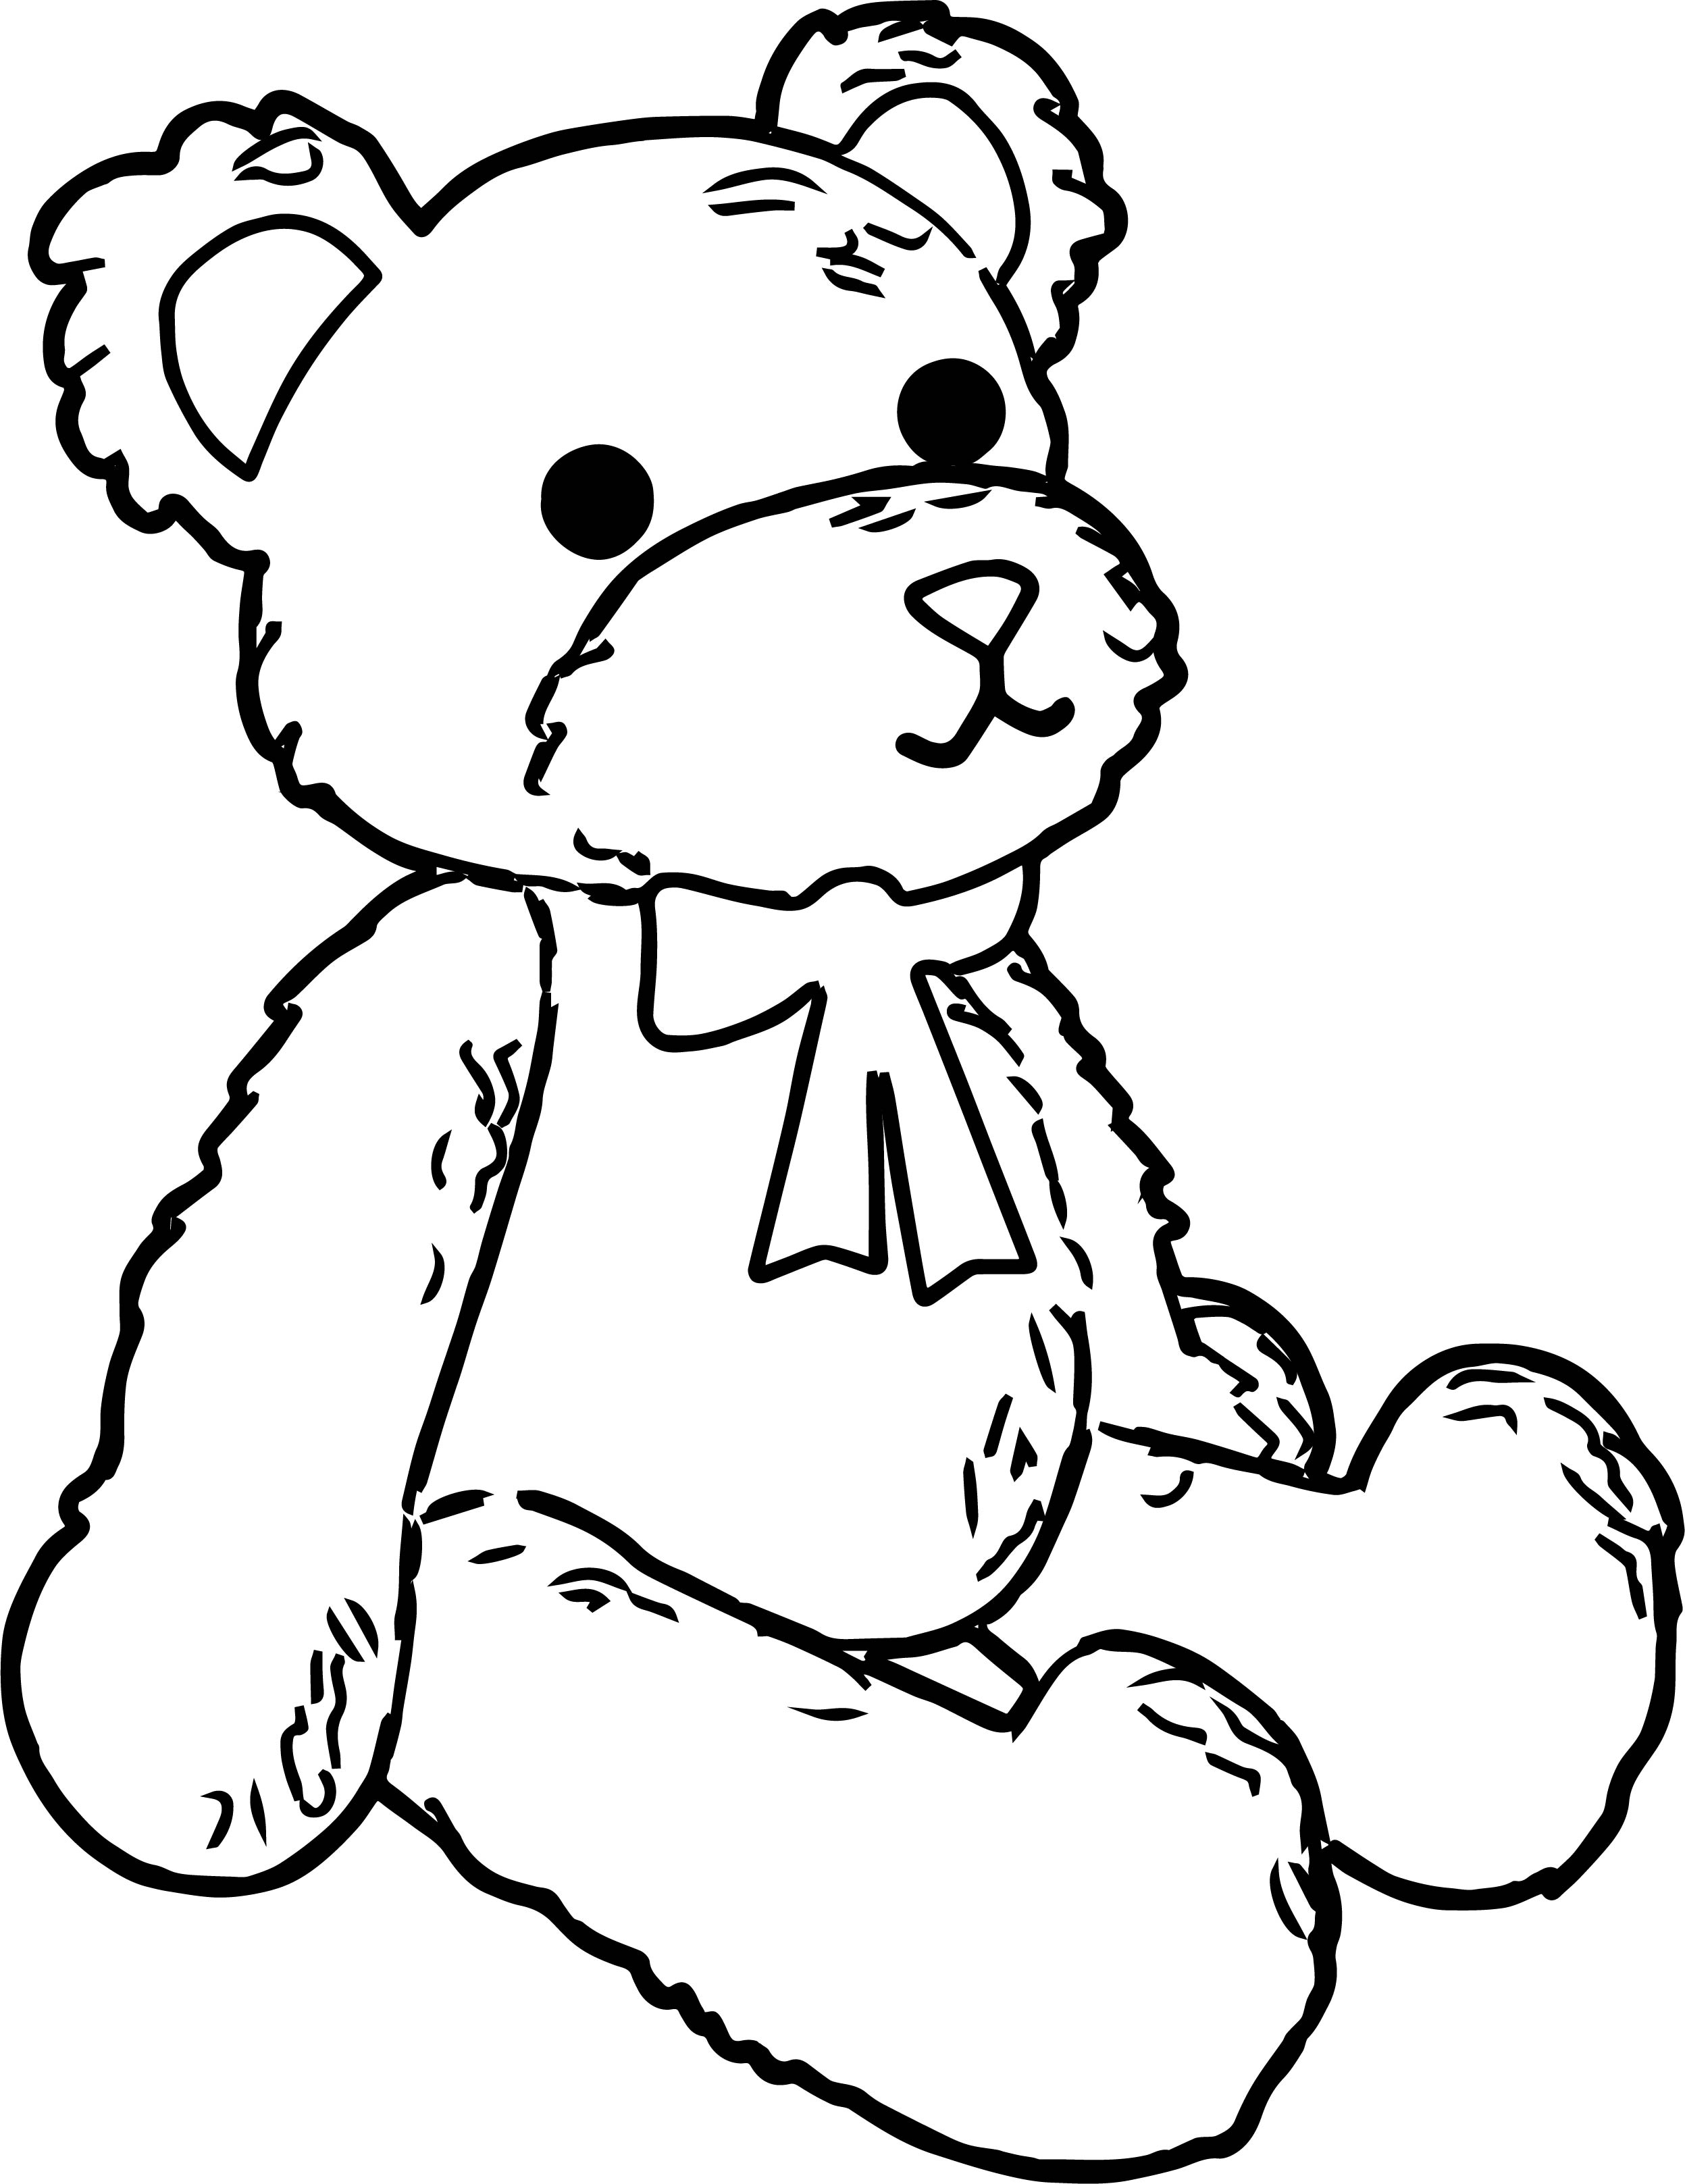 Was Bear Coloring Page